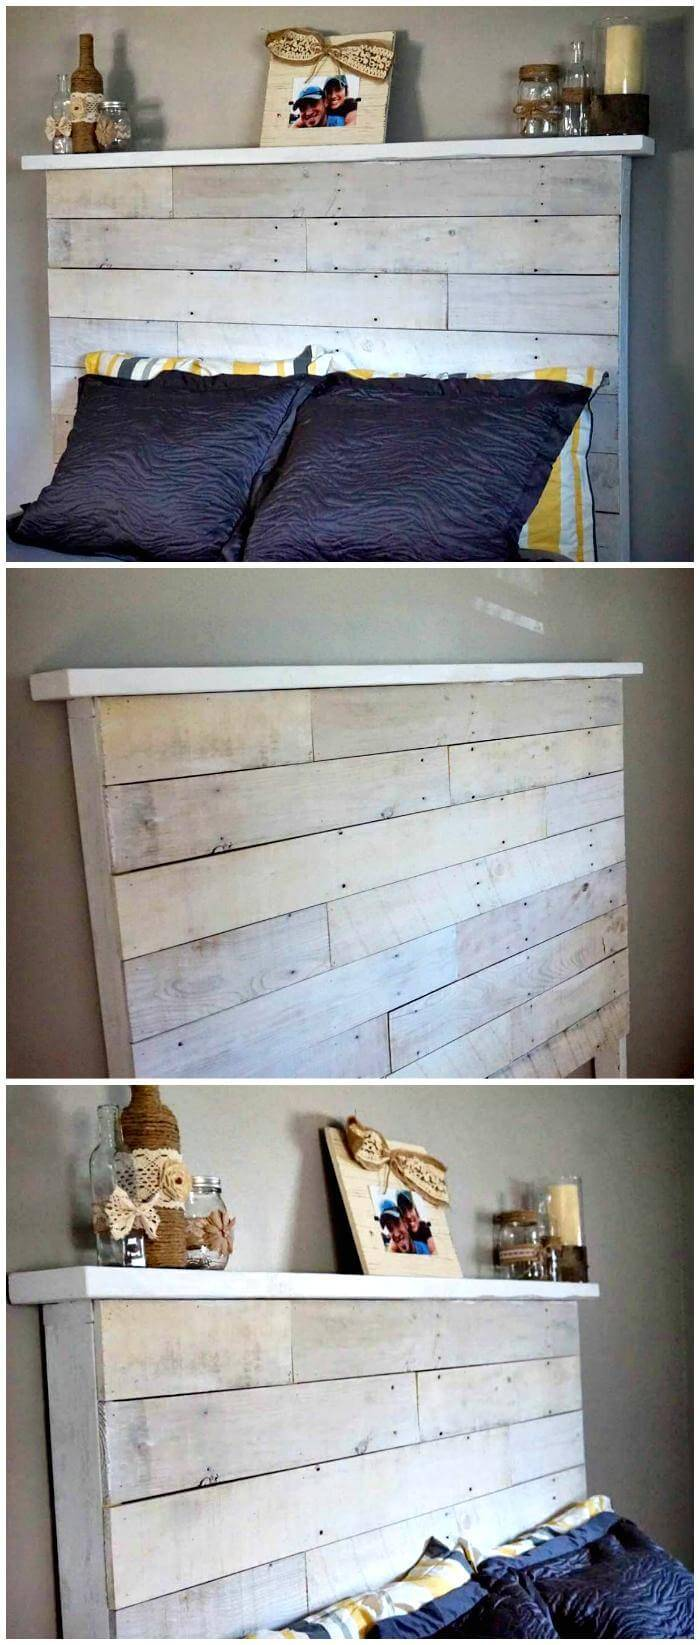 DIY Pallet Headboard Instructions